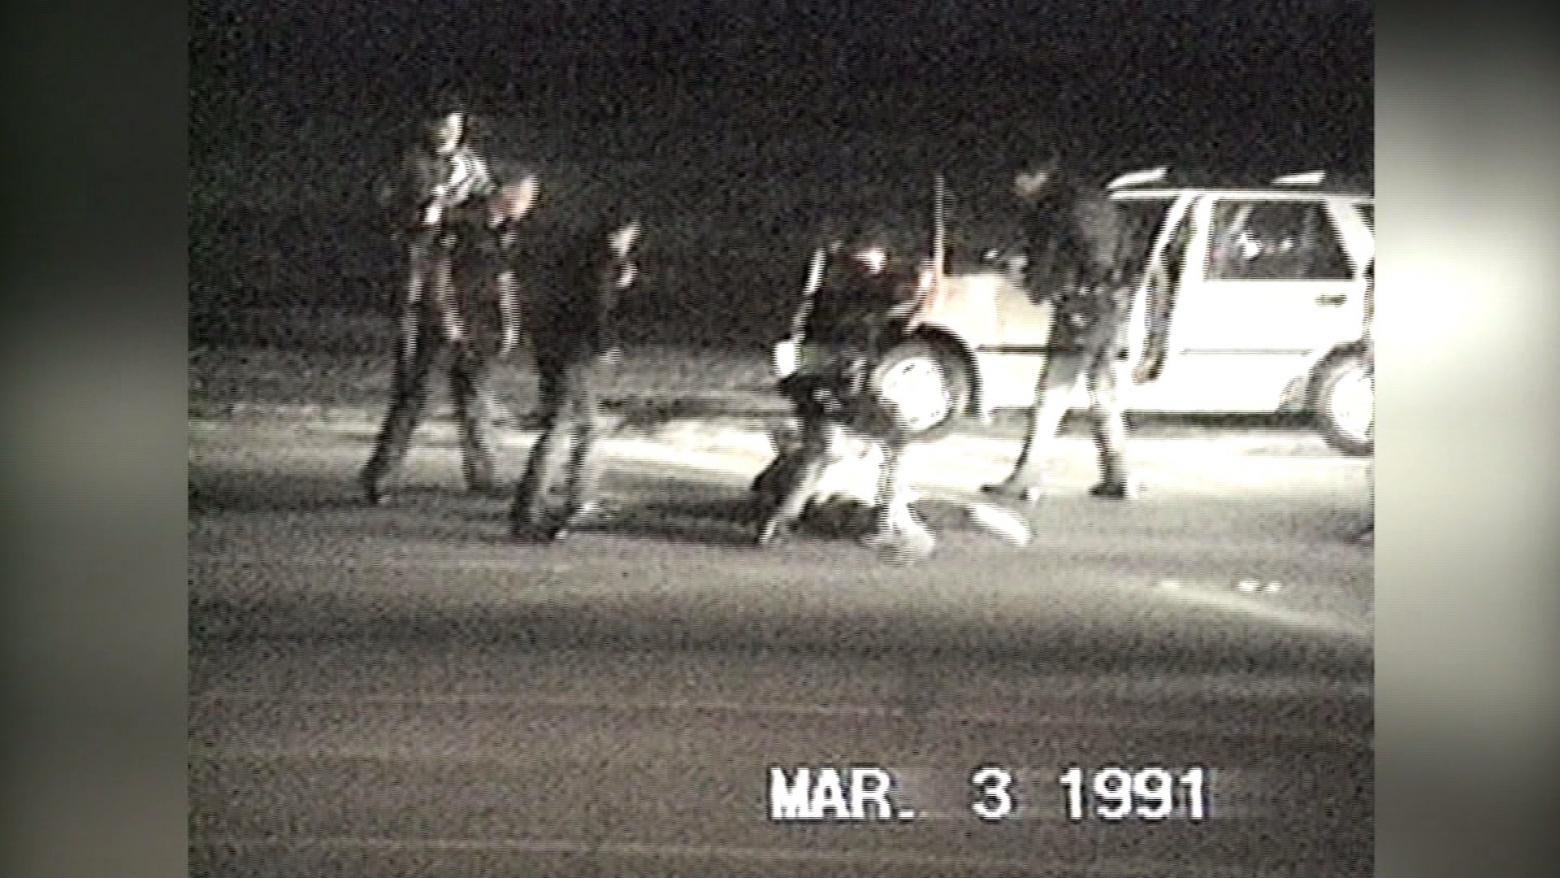 an old surveillance photo of police beating a man